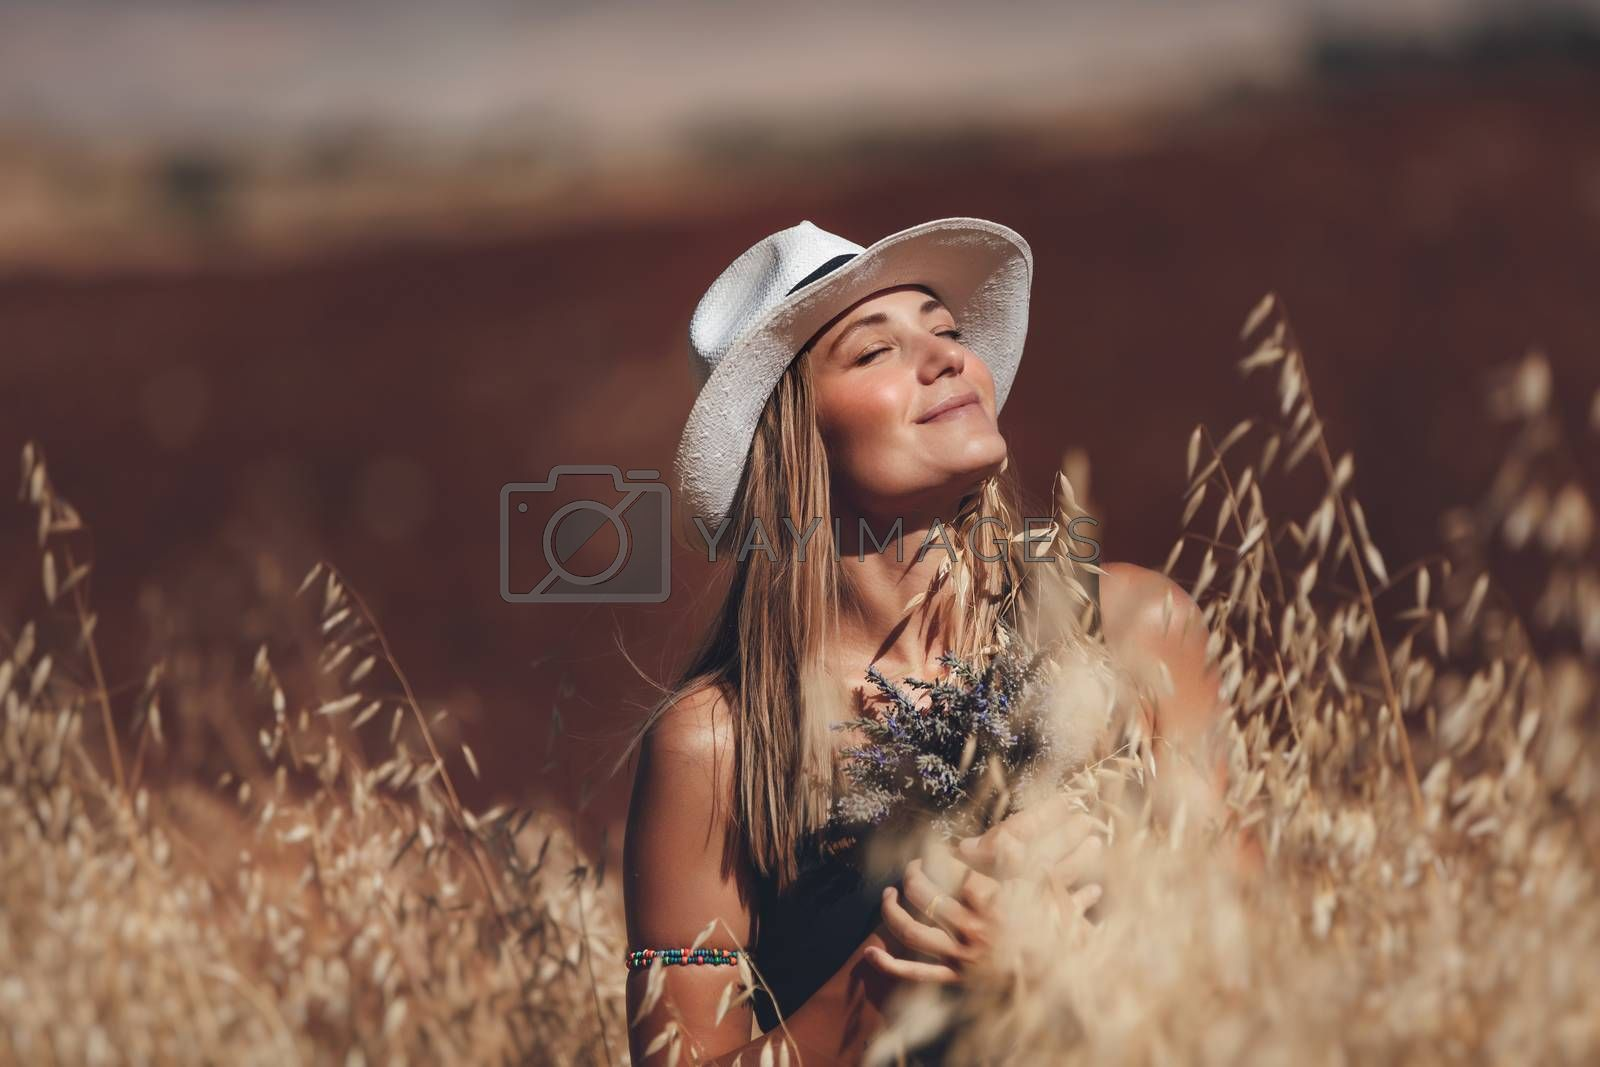 Portrait of a Happy Young Blond Woman Outdoors. Girl Holding Lavender Flowers Bouquet. Standing in a Wheat Field. Enjoying Nature. Beautiful Sunny Day.